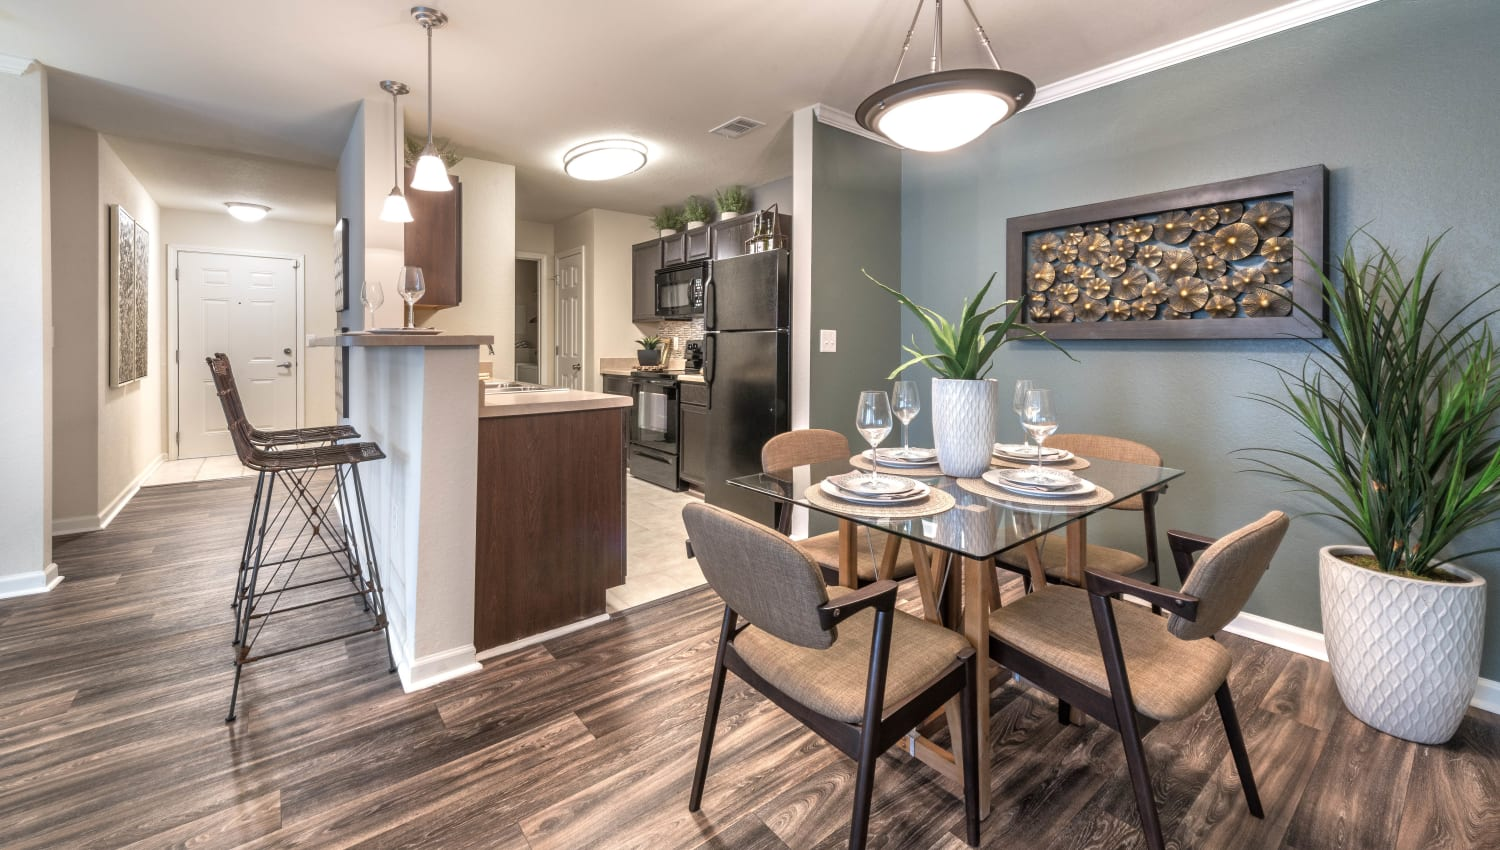 Model home's dining area at Olympus Hillwood in Murfreesboro, Tennessee